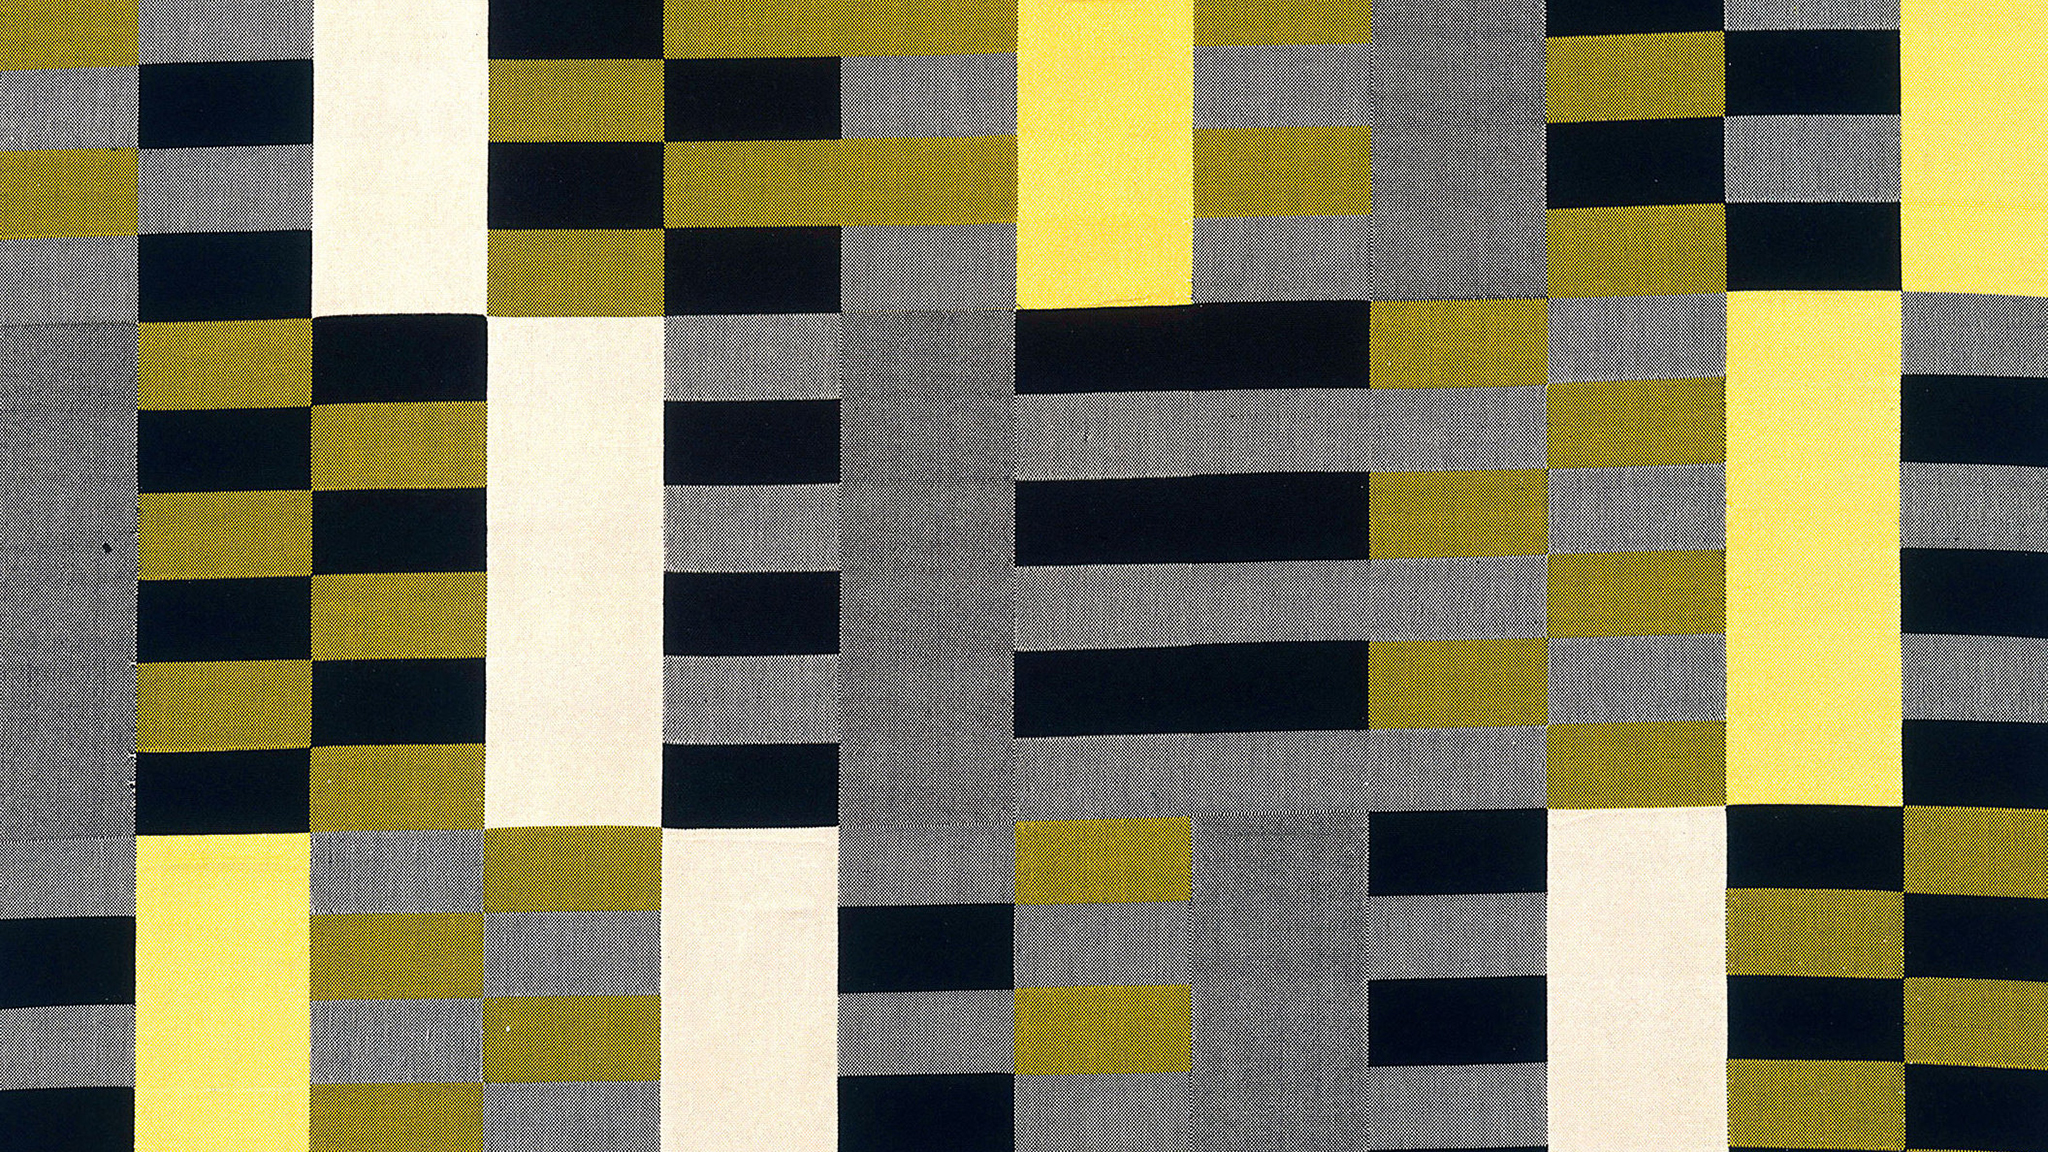 Anni Albers: Black White Yellow, color pattern under Bauhaus influence.